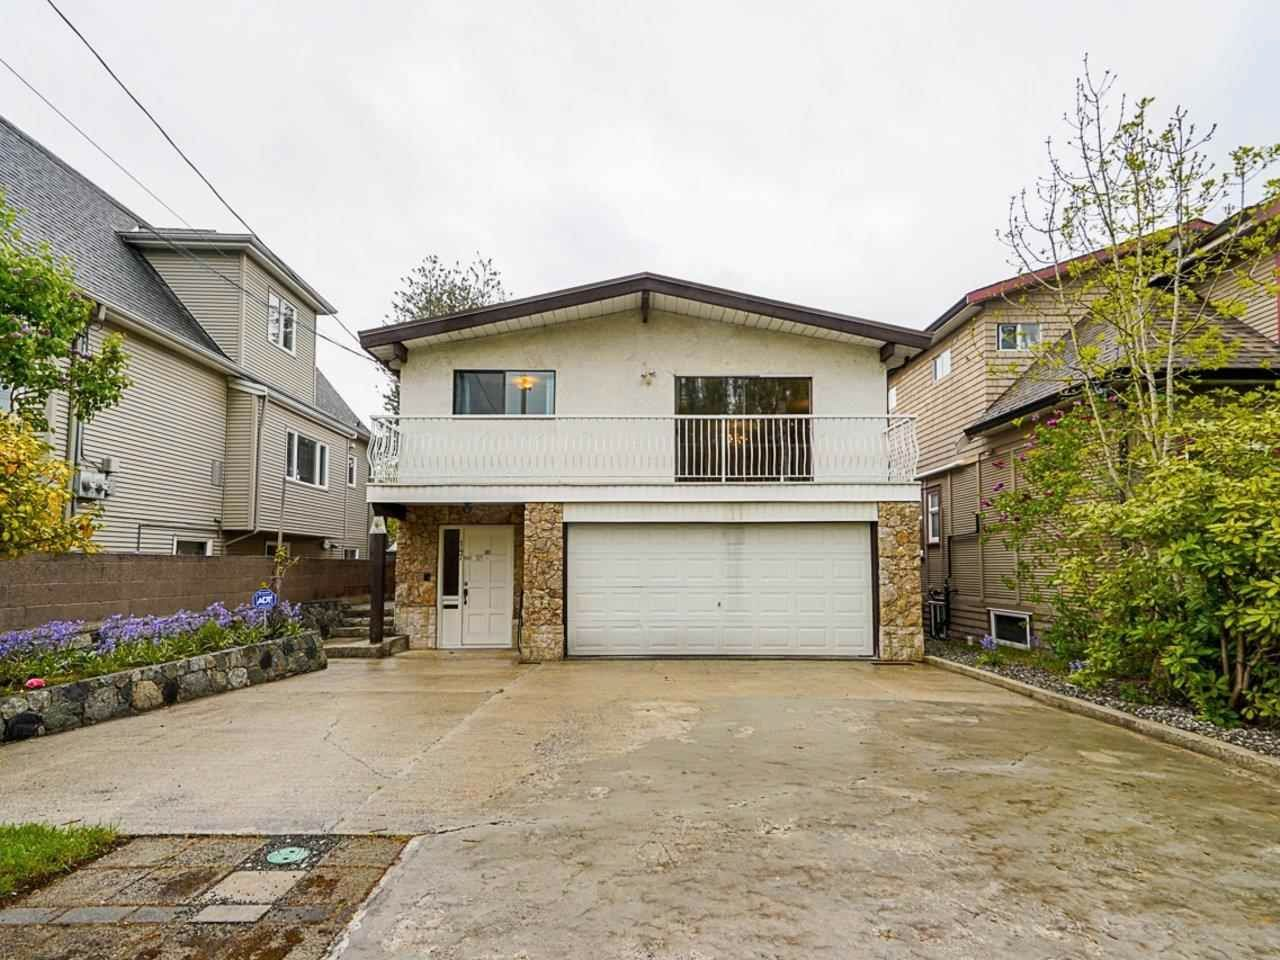 Main Photo: 147 E 28TH Avenue in Vancouver: Main House for sale (Vancouver East)  : MLS®# R2574252